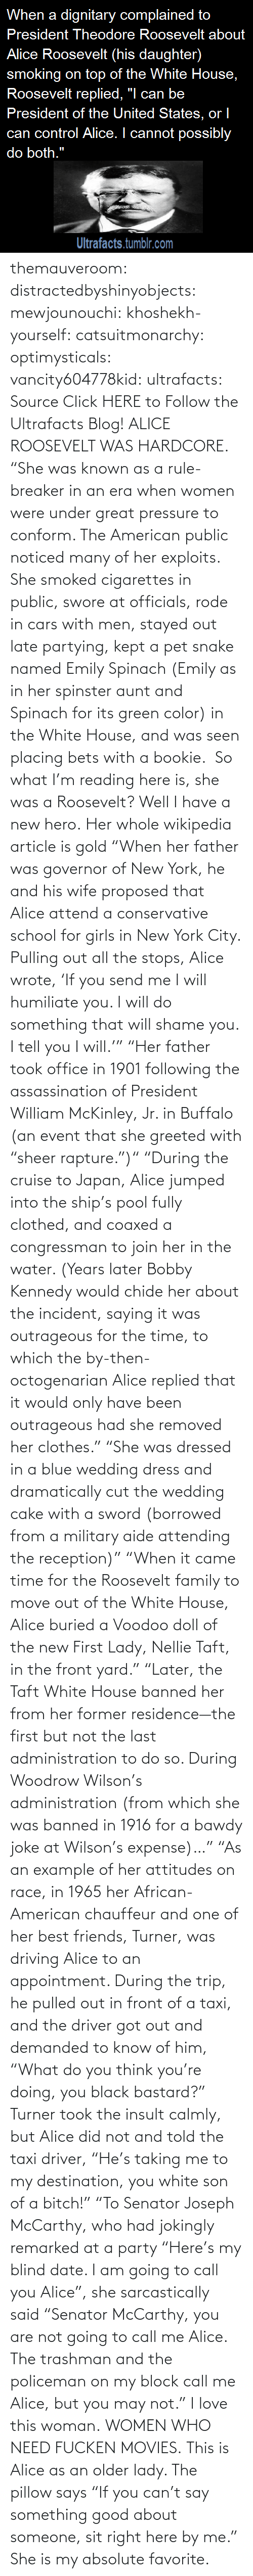 "movies: themauveroom: distractedbyshinyobjects:  mewjounouchi:  khoshekh-yourself:  catsuitmonarchy:  optimysticals:  vancity604778kid:  ultrafacts:     Source Click HERE to Follow the Ultrafacts Blog!     ALICE ROOSEVELT WAS HARDCORE. ""She was known as a rule-breaker in an era when women were under great pressure to conform. The American public noticed many of her exploits. She smoked cigarettes in public, swore at officials, rode in cars with men, stayed out late partying, kept a pet snake named Emily Spinach (Emily as in her spinster aunt and Spinach for its green color) in the White House, and was seen placing bets with a bookie.    So what I'm reading here is, she was a Roosevelt?  Well I have a new hero.  Her whole wikipedia article is gold ""When her father was governor of New York, he and his wife proposed that Alice attend a conservative school for girls in New York City. Pulling out all the stops, Alice wrote, 'If you send me I will humiliate you. I will do something that will shame you. I tell you I will.'"" ""Her father took office in 1901 following the assassination of President William McKinley, Jr. in Buffalo (an event that she greeted with ""sheer rapture."")"" ""During the cruise to Japan, Alice jumped into the ship's pool fully clothed, and coaxed a congressman to join her in the water. (Years later Bobby Kennedy would chide her about the incident, saying it was outrageous for the time, to which the by-then-octogenarian Alice replied that it would only have been outrageous had she removed her clothes."" ""She was dressed in a blue wedding dress and dramatically cut the wedding cake with a sword (borrowed from a military aide attending the reception)"" ""When it came time for the Roosevelt family to move out of the White House, Alice buried a Voodoo doll of the new First Lady, Nellie Taft, in the front yard."" ""Later, the Taft White House banned her from her former residence—the first but not the last administration to do so. During Woodrow Wilson's administration (from which she was banned in 1916 for a bawdy joke at Wilson's expense)…"" ""As an example of her attitudes on race, in 1965 her African-American chauffeur and one of her best friends, Turner, was driving Alice to an appointment. During the trip, he pulled out in front of a taxi, and the driver got out and demanded to know of him, ""What do you think you're doing, you black bastard?"" Turner took the insult calmly, but Alice did not and told the taxi driver, ""He's taking me to my destination, you white son of a bitch!"" ""To Senator Joseph McCarthy, who had jokingly remarked at a party ""Here's my blind date. I am going to call you Alice"", she sarcastically said ""Senator McCarthy, you are not going to call me Alice. The trashman and the policeman on my block call me Alice, but you may not.""  I love this woman.  WOMEN WHO NEED FUCKEN MOVIES.   This is Alice as an older lady. The pillow says ""If you can't say something good about someone, sit right here by me.""  She is my absolute favorite."